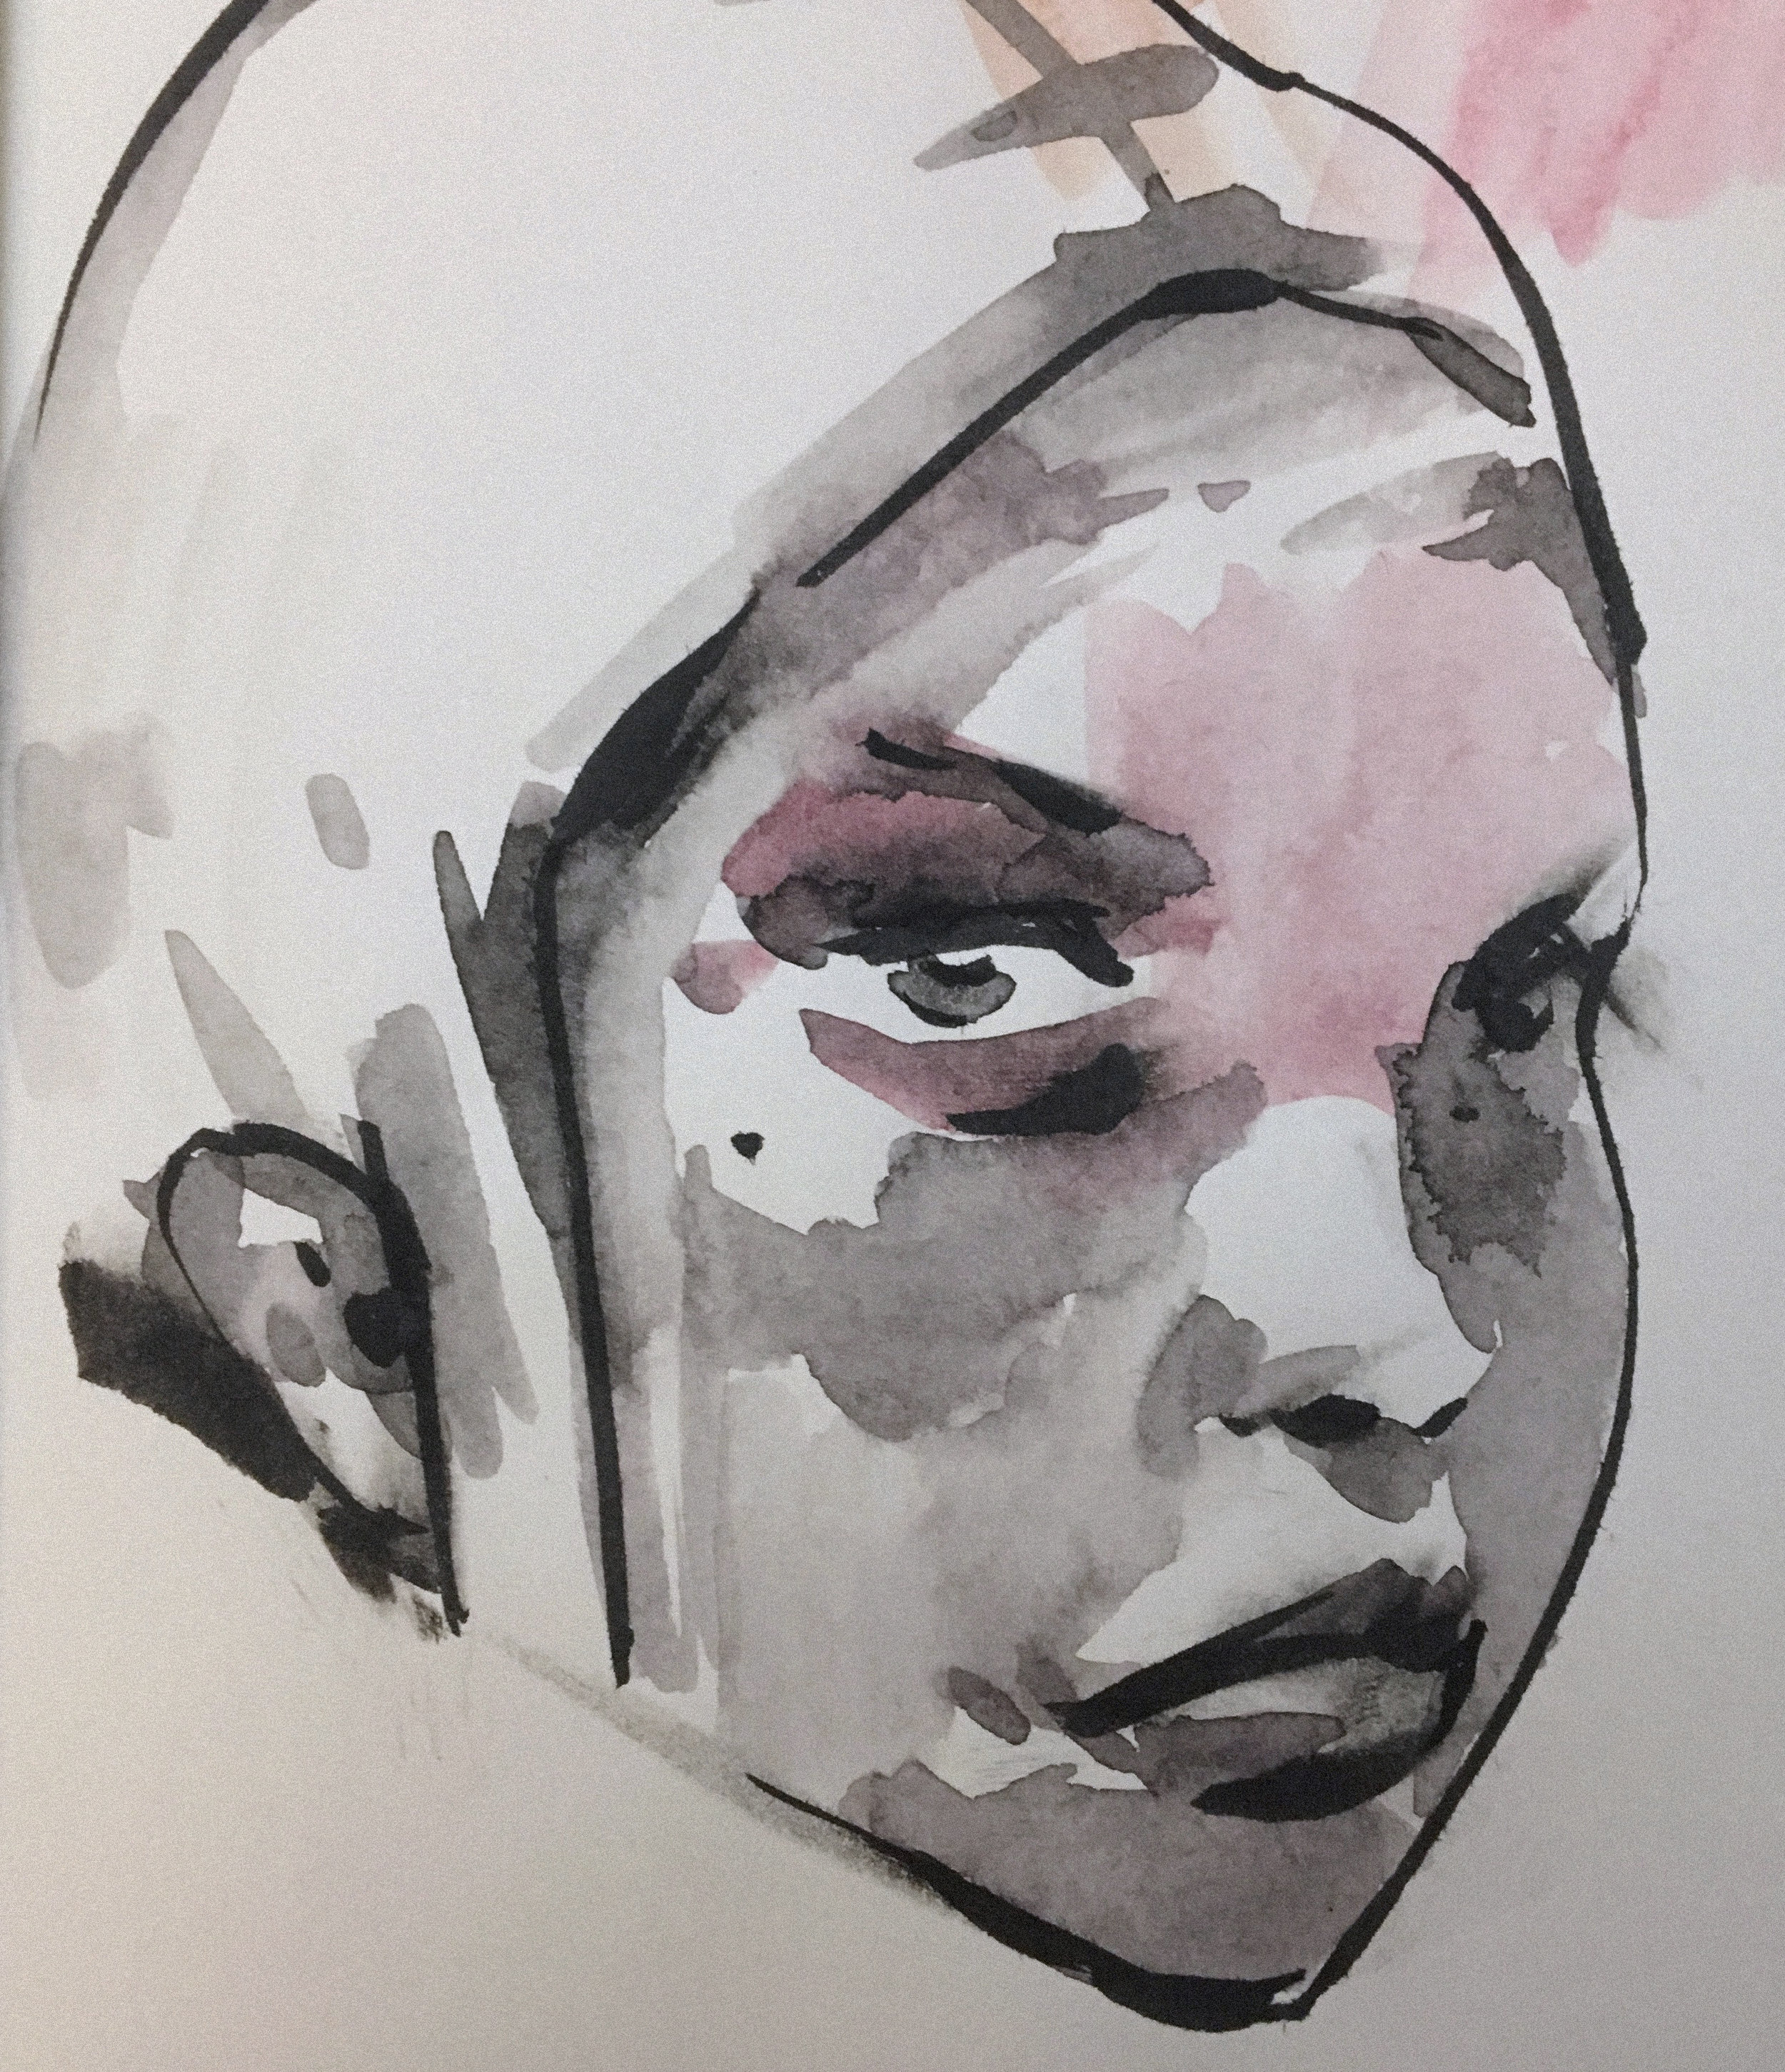 sketch ink and watercolor (2018)